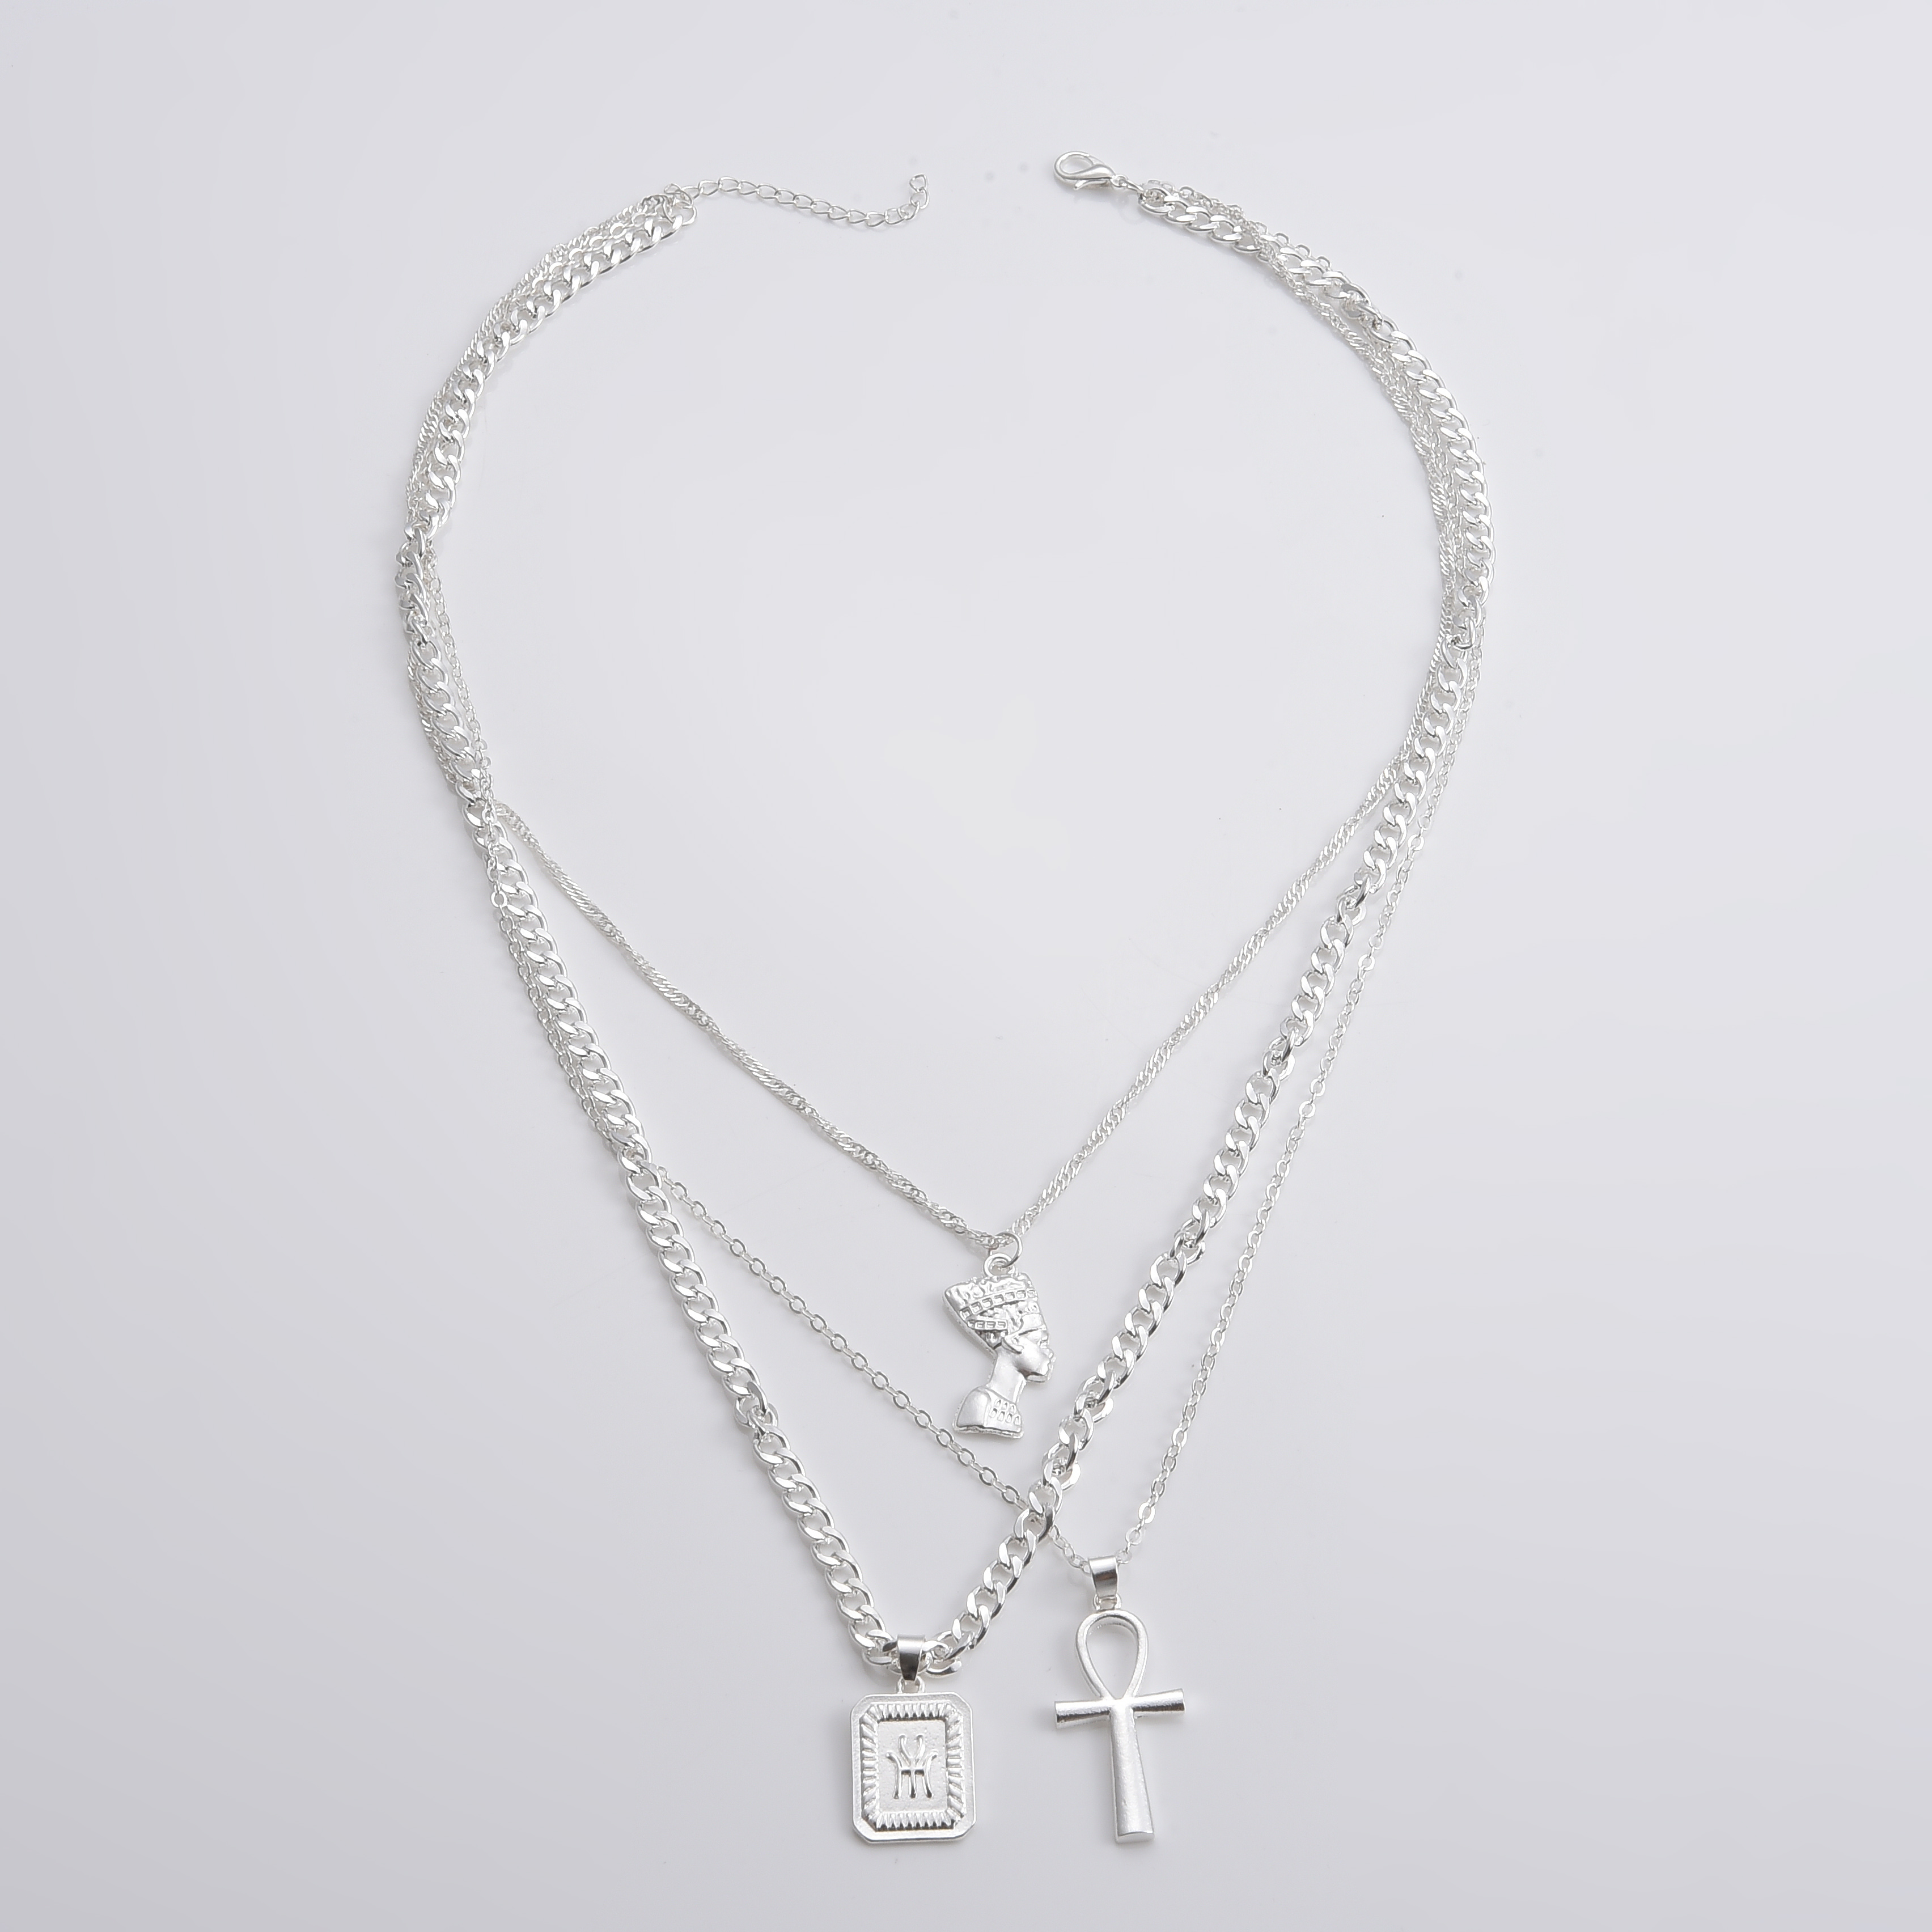 Bohemian Female Necklace Alloy Cross Human head letter Gold Necklace Set Women Fashion Valentines Day Gift Jewelry